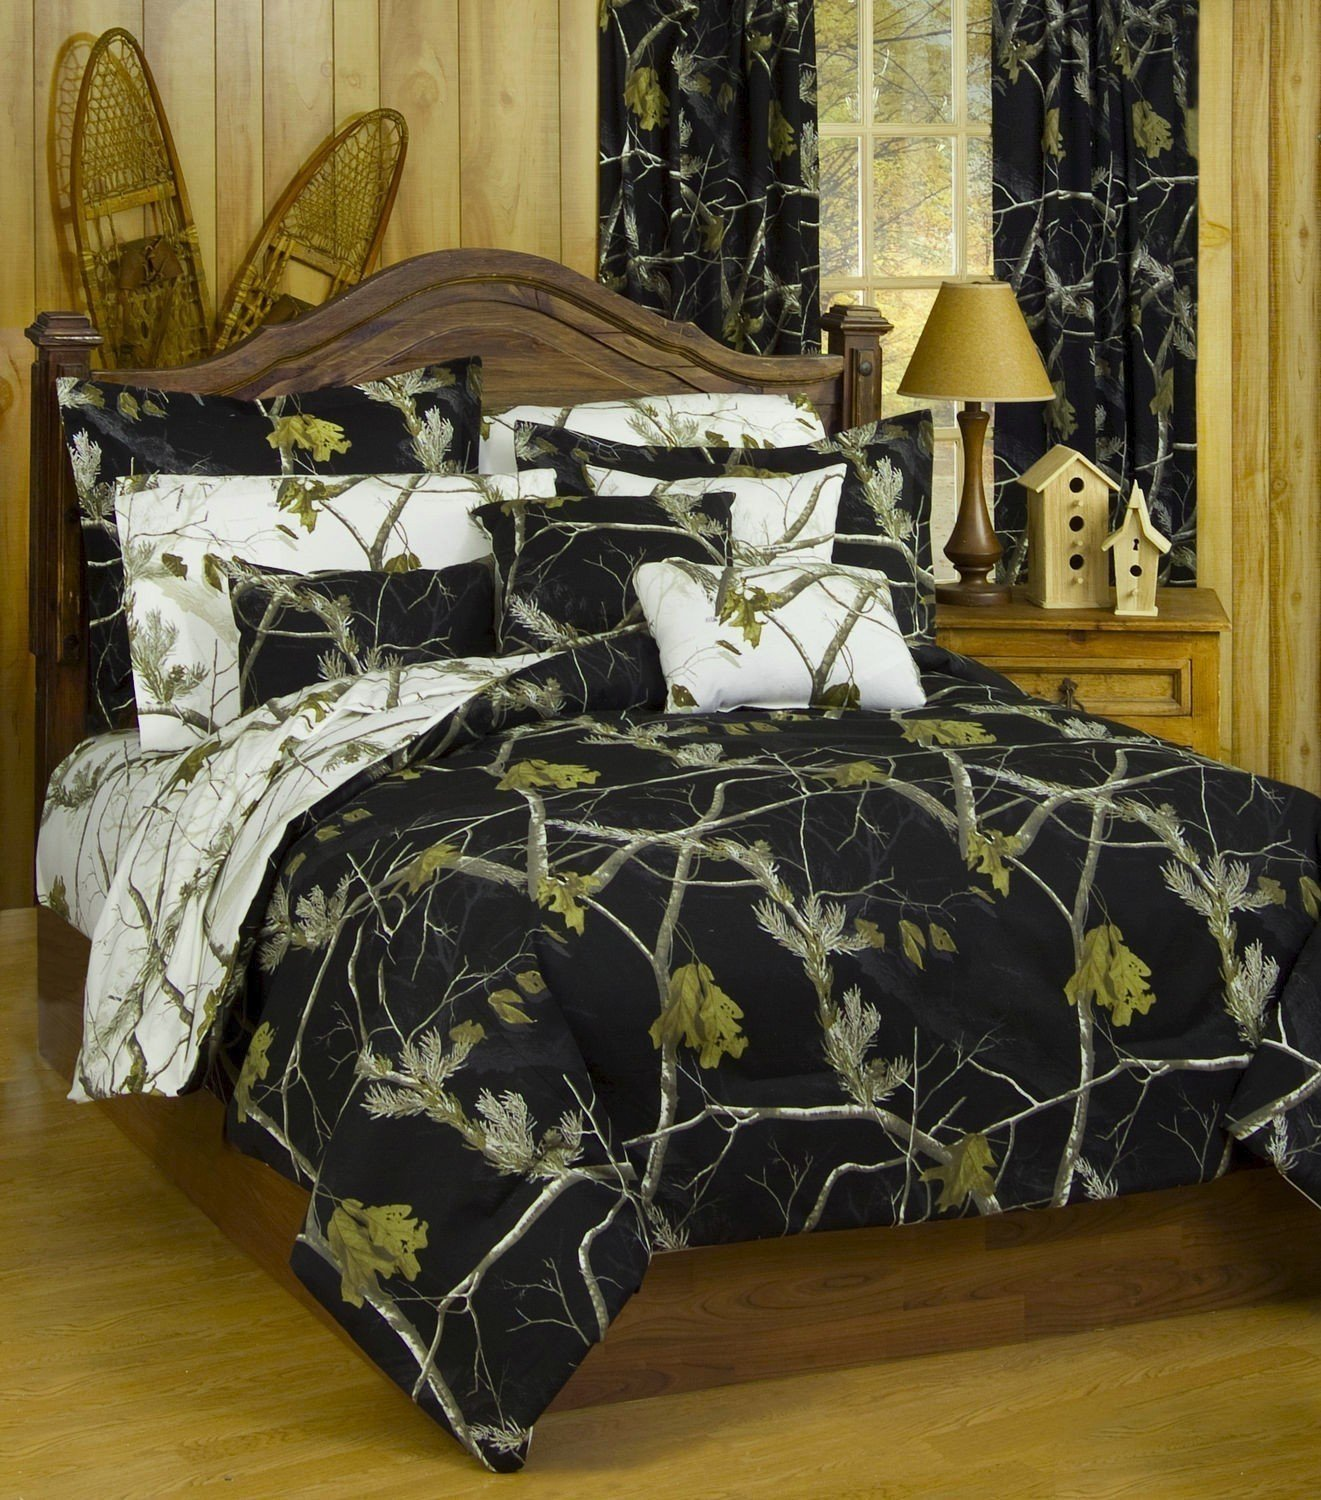 Realtree AP Black Camo 7 Pc Queen Reversible Bedding Set, AP White Camo Sheet Set & 2 Valance/Drape Sets: (Comforter, Sheets, 2 Pillowcases, 2 Pillow Shams , 2 Valance/Drape Sets For 2 Windows)